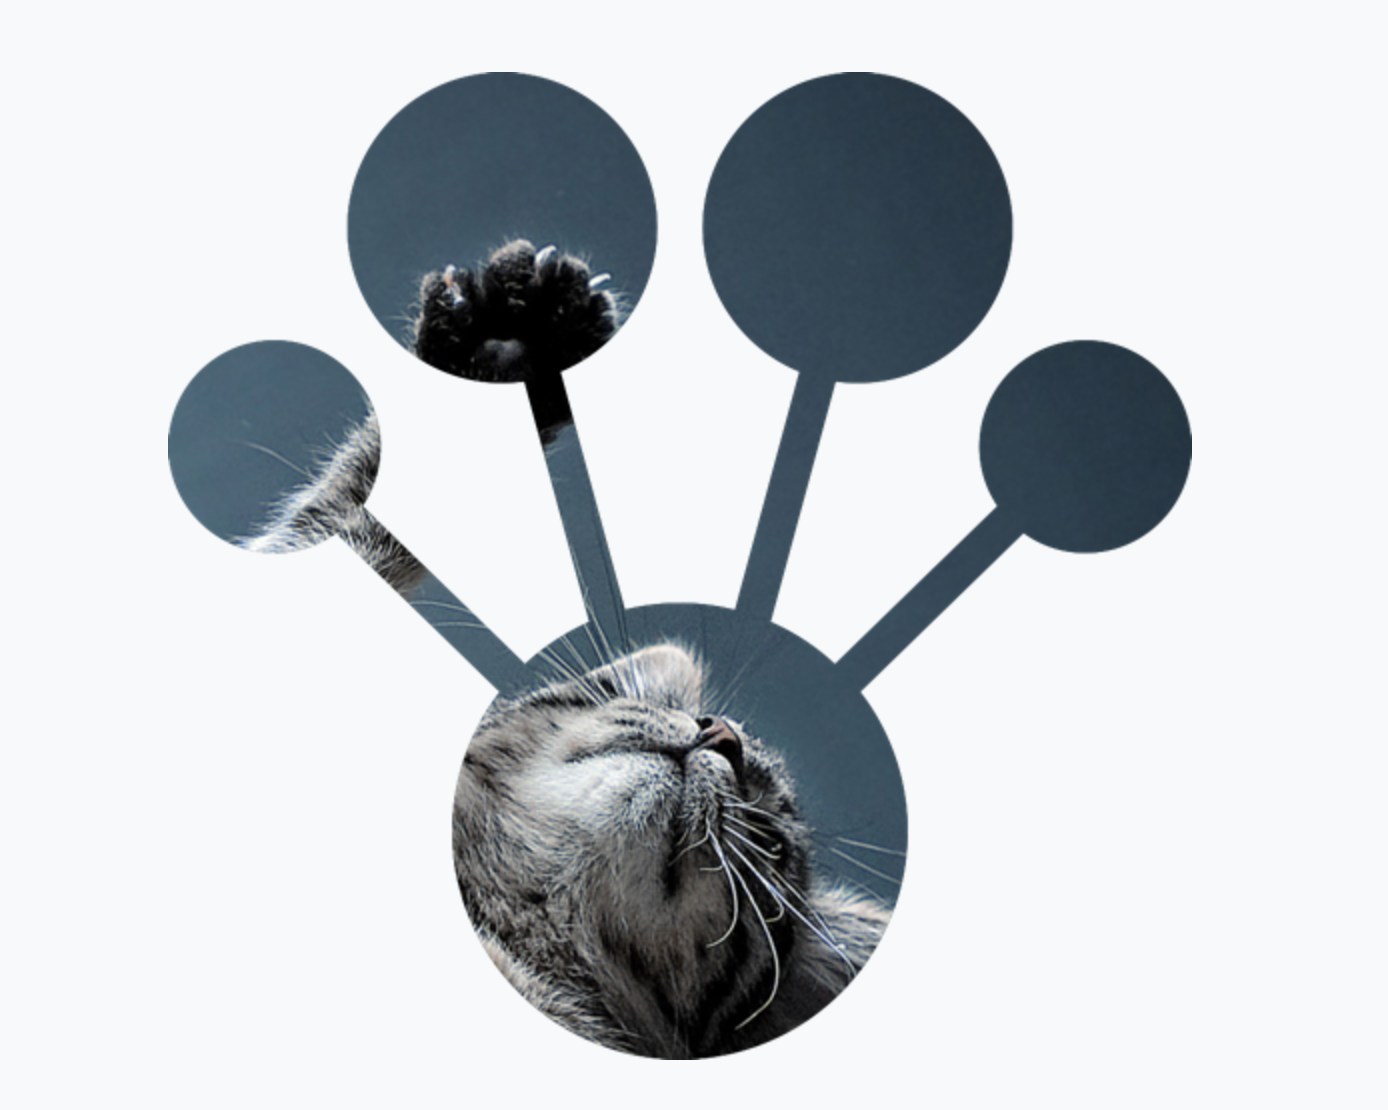 Yandex open sources CatBoost, a gradient boosting machine learning